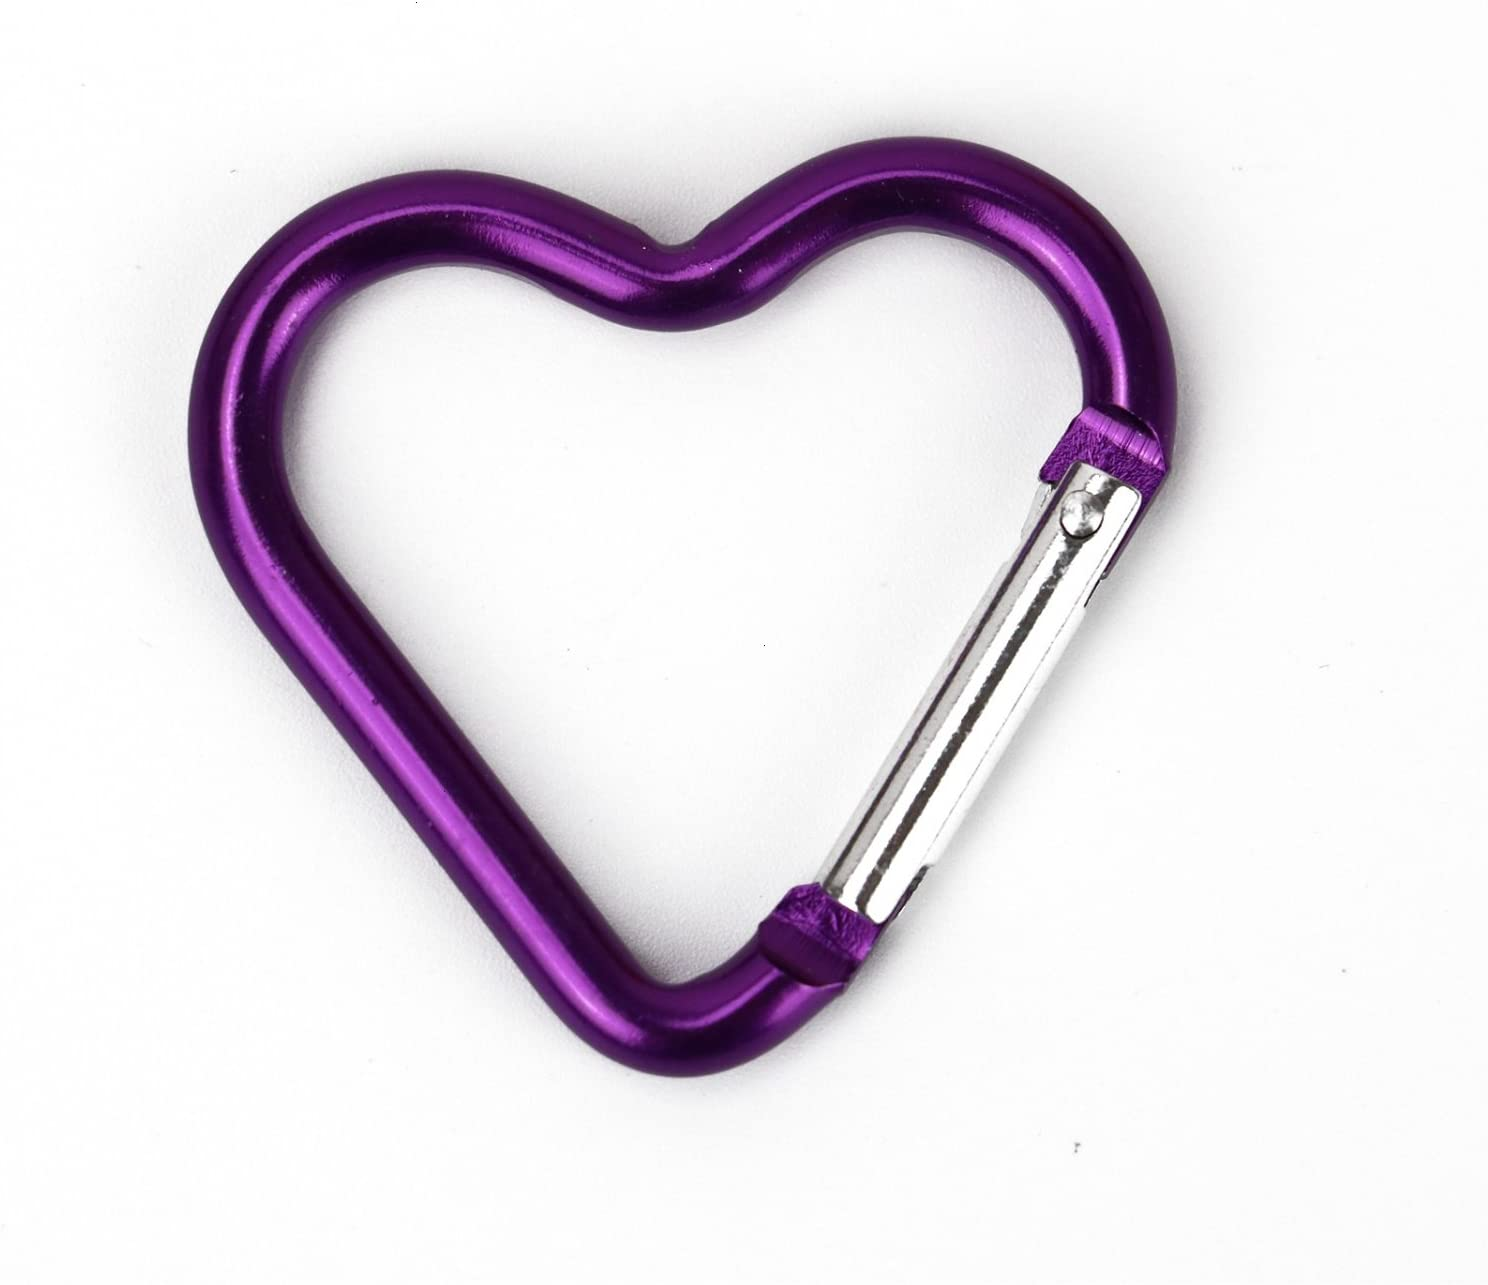 10 Pcs Heart Shaped Aluminum Alloy Keychain Clip Carabiner Snaphook Hook Holder Aluminum Heart Carabiner Hook Clip Key Holder Ten: Office Products